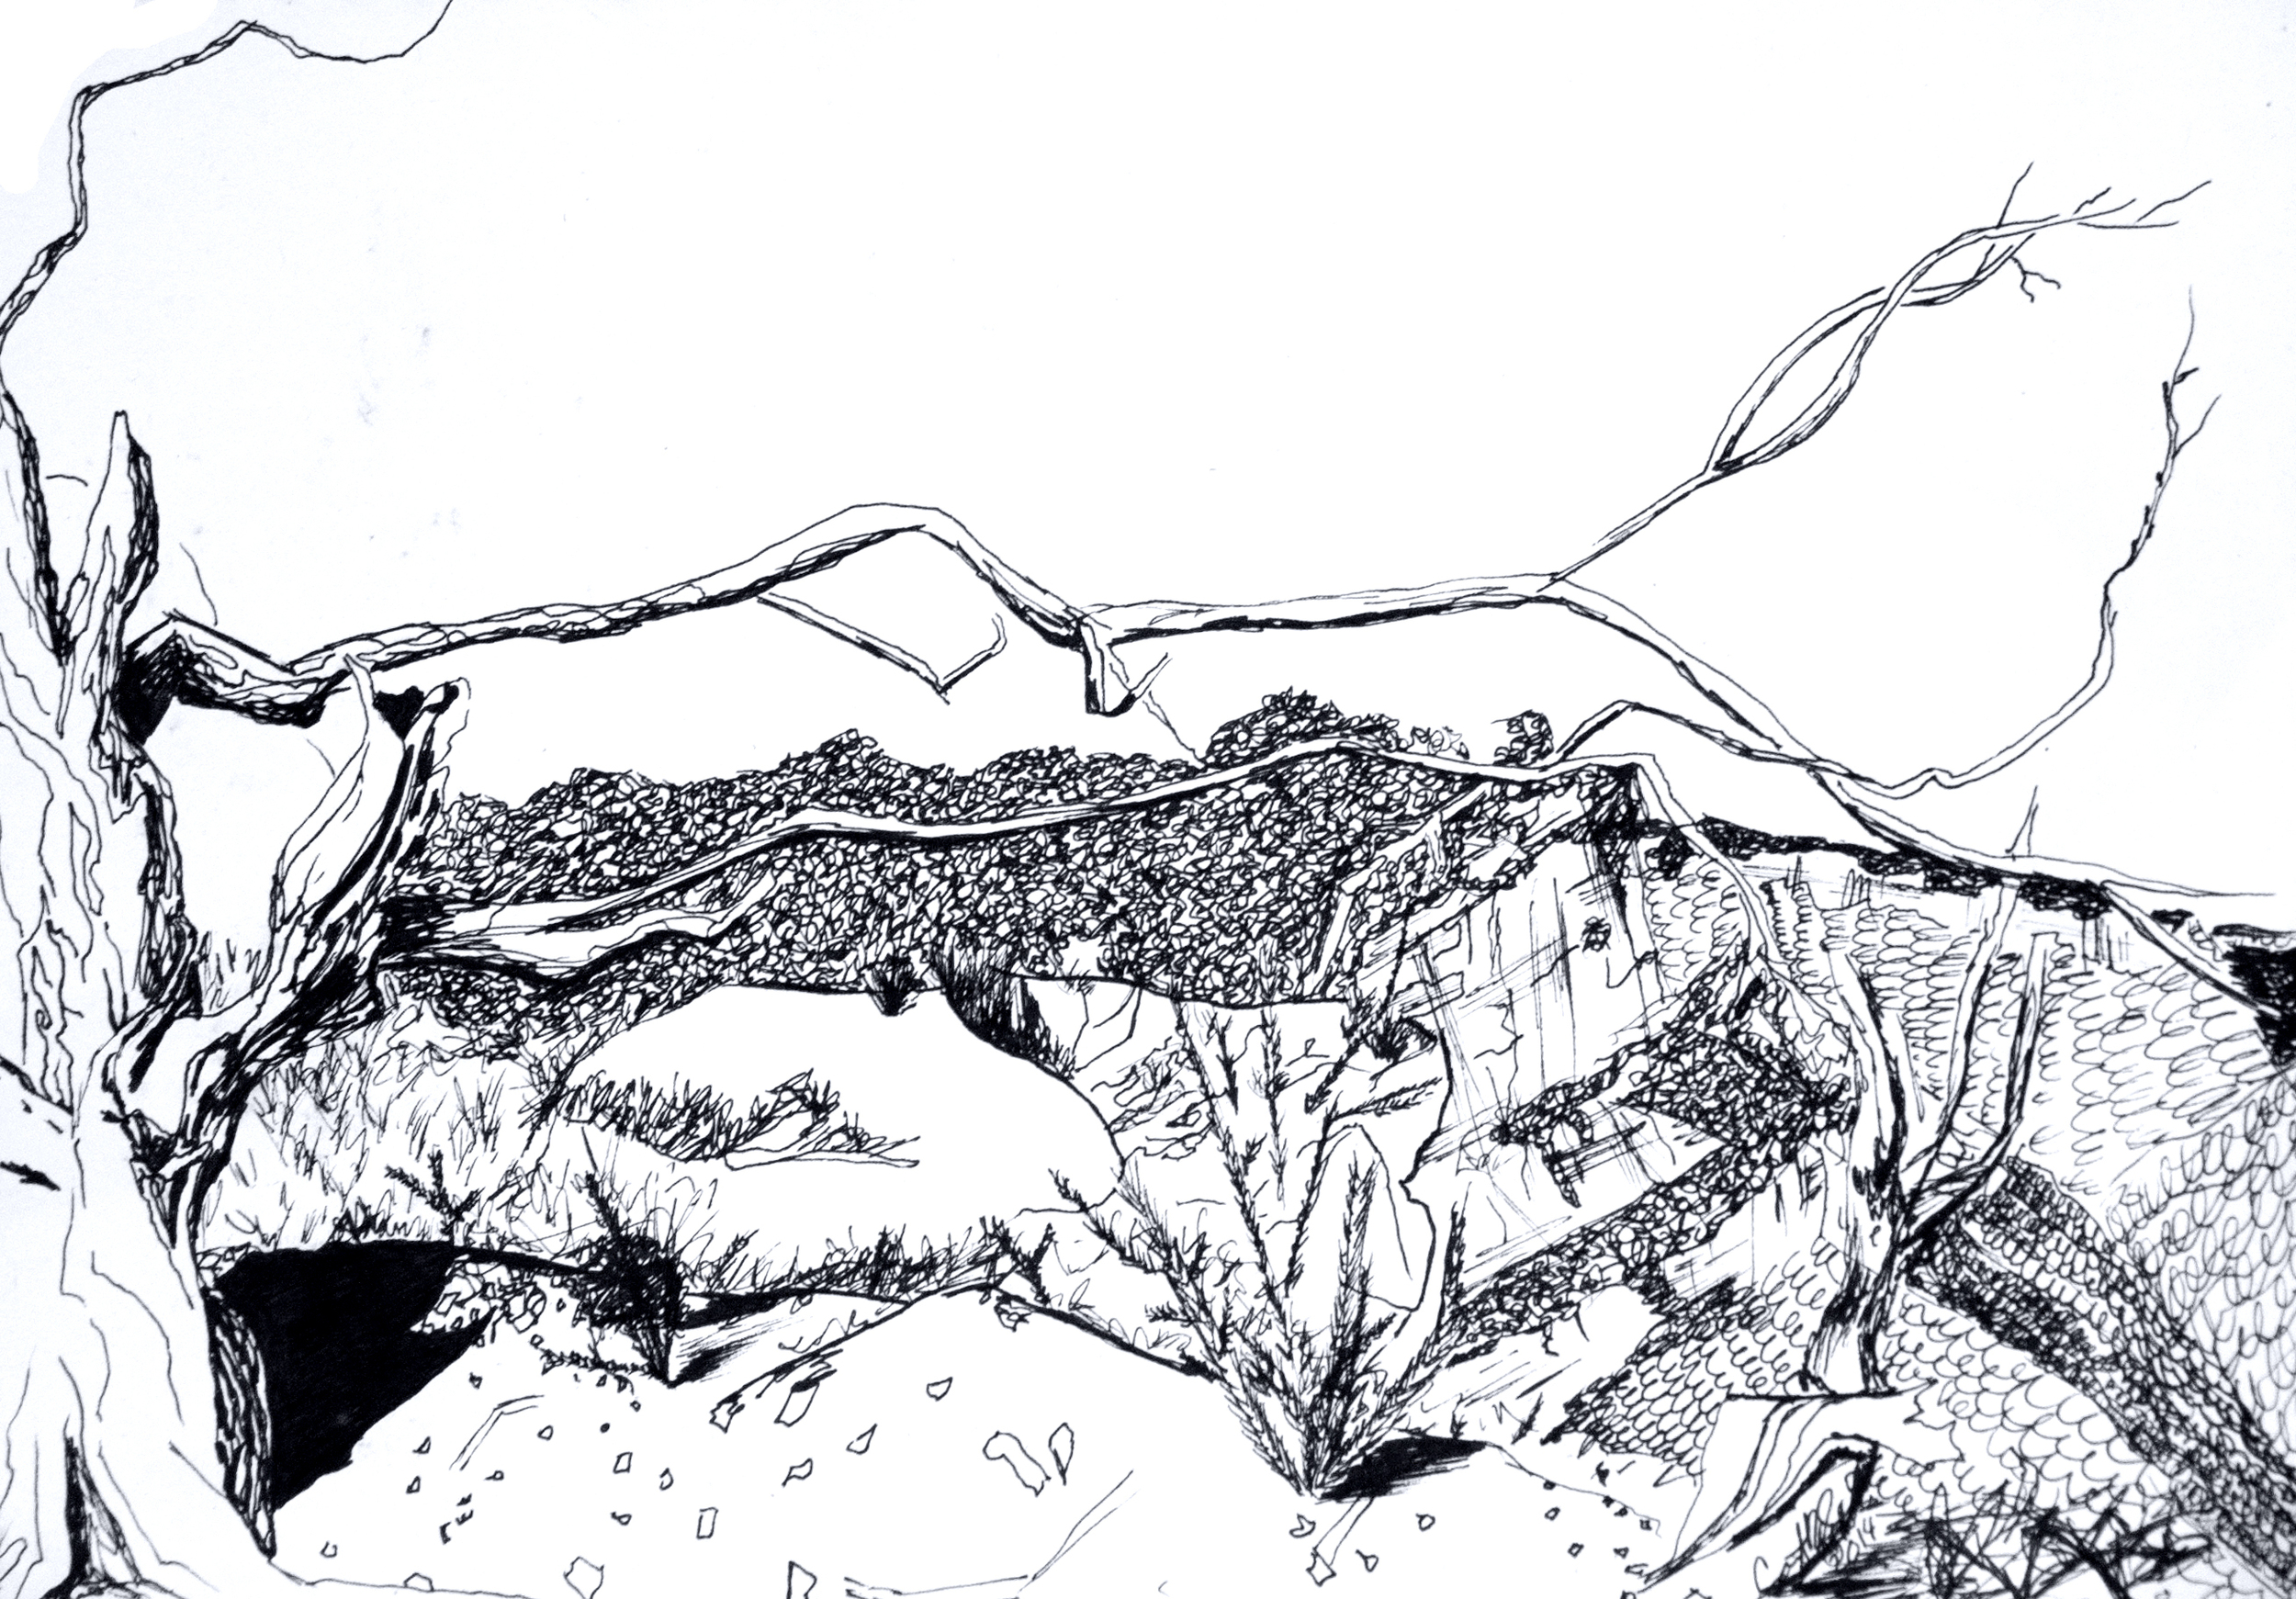 07_Draw on the Mountain_20141001_0013.jpg